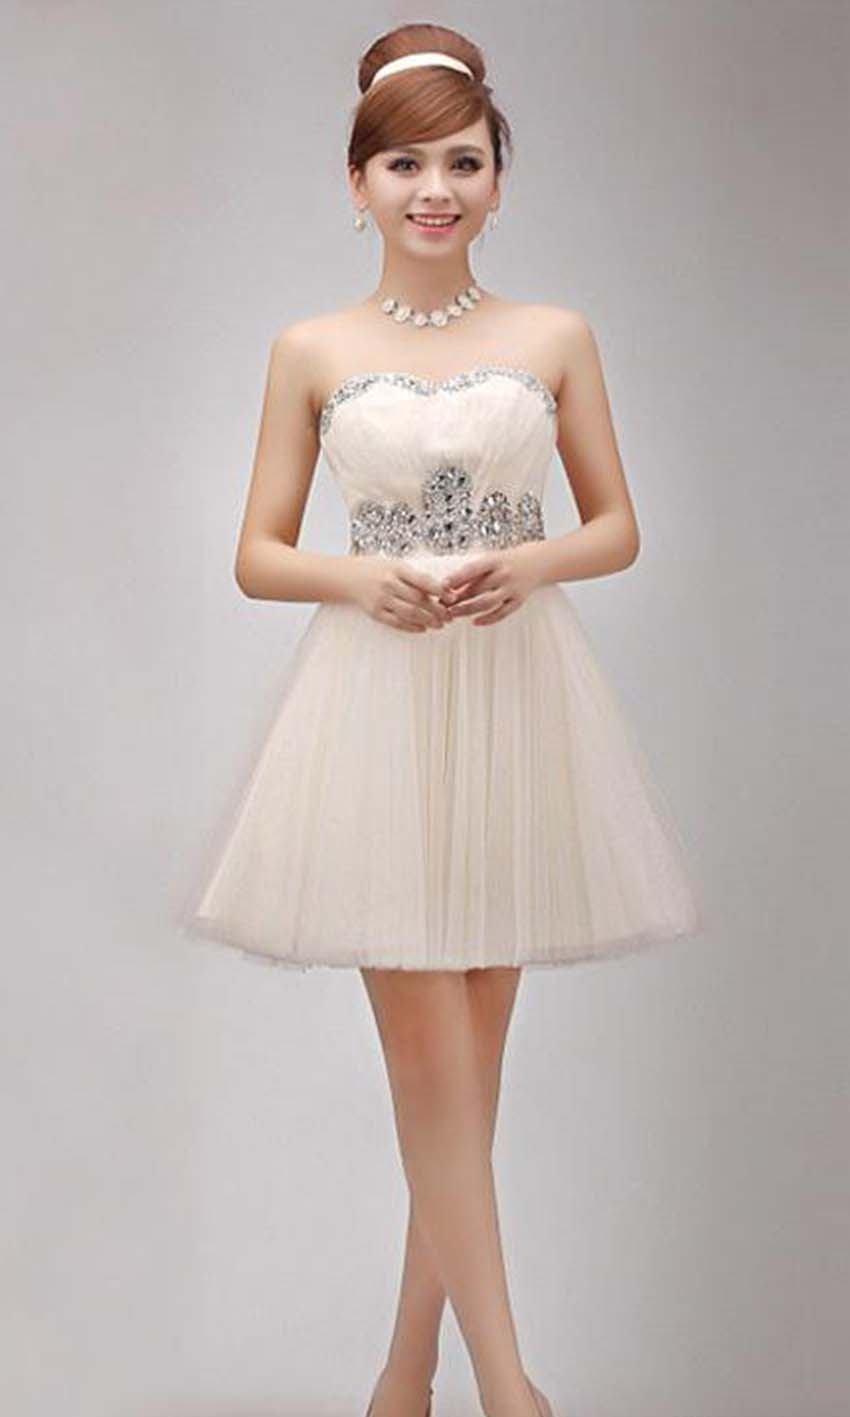 to wear - Bridesmaid champagne dresses short video